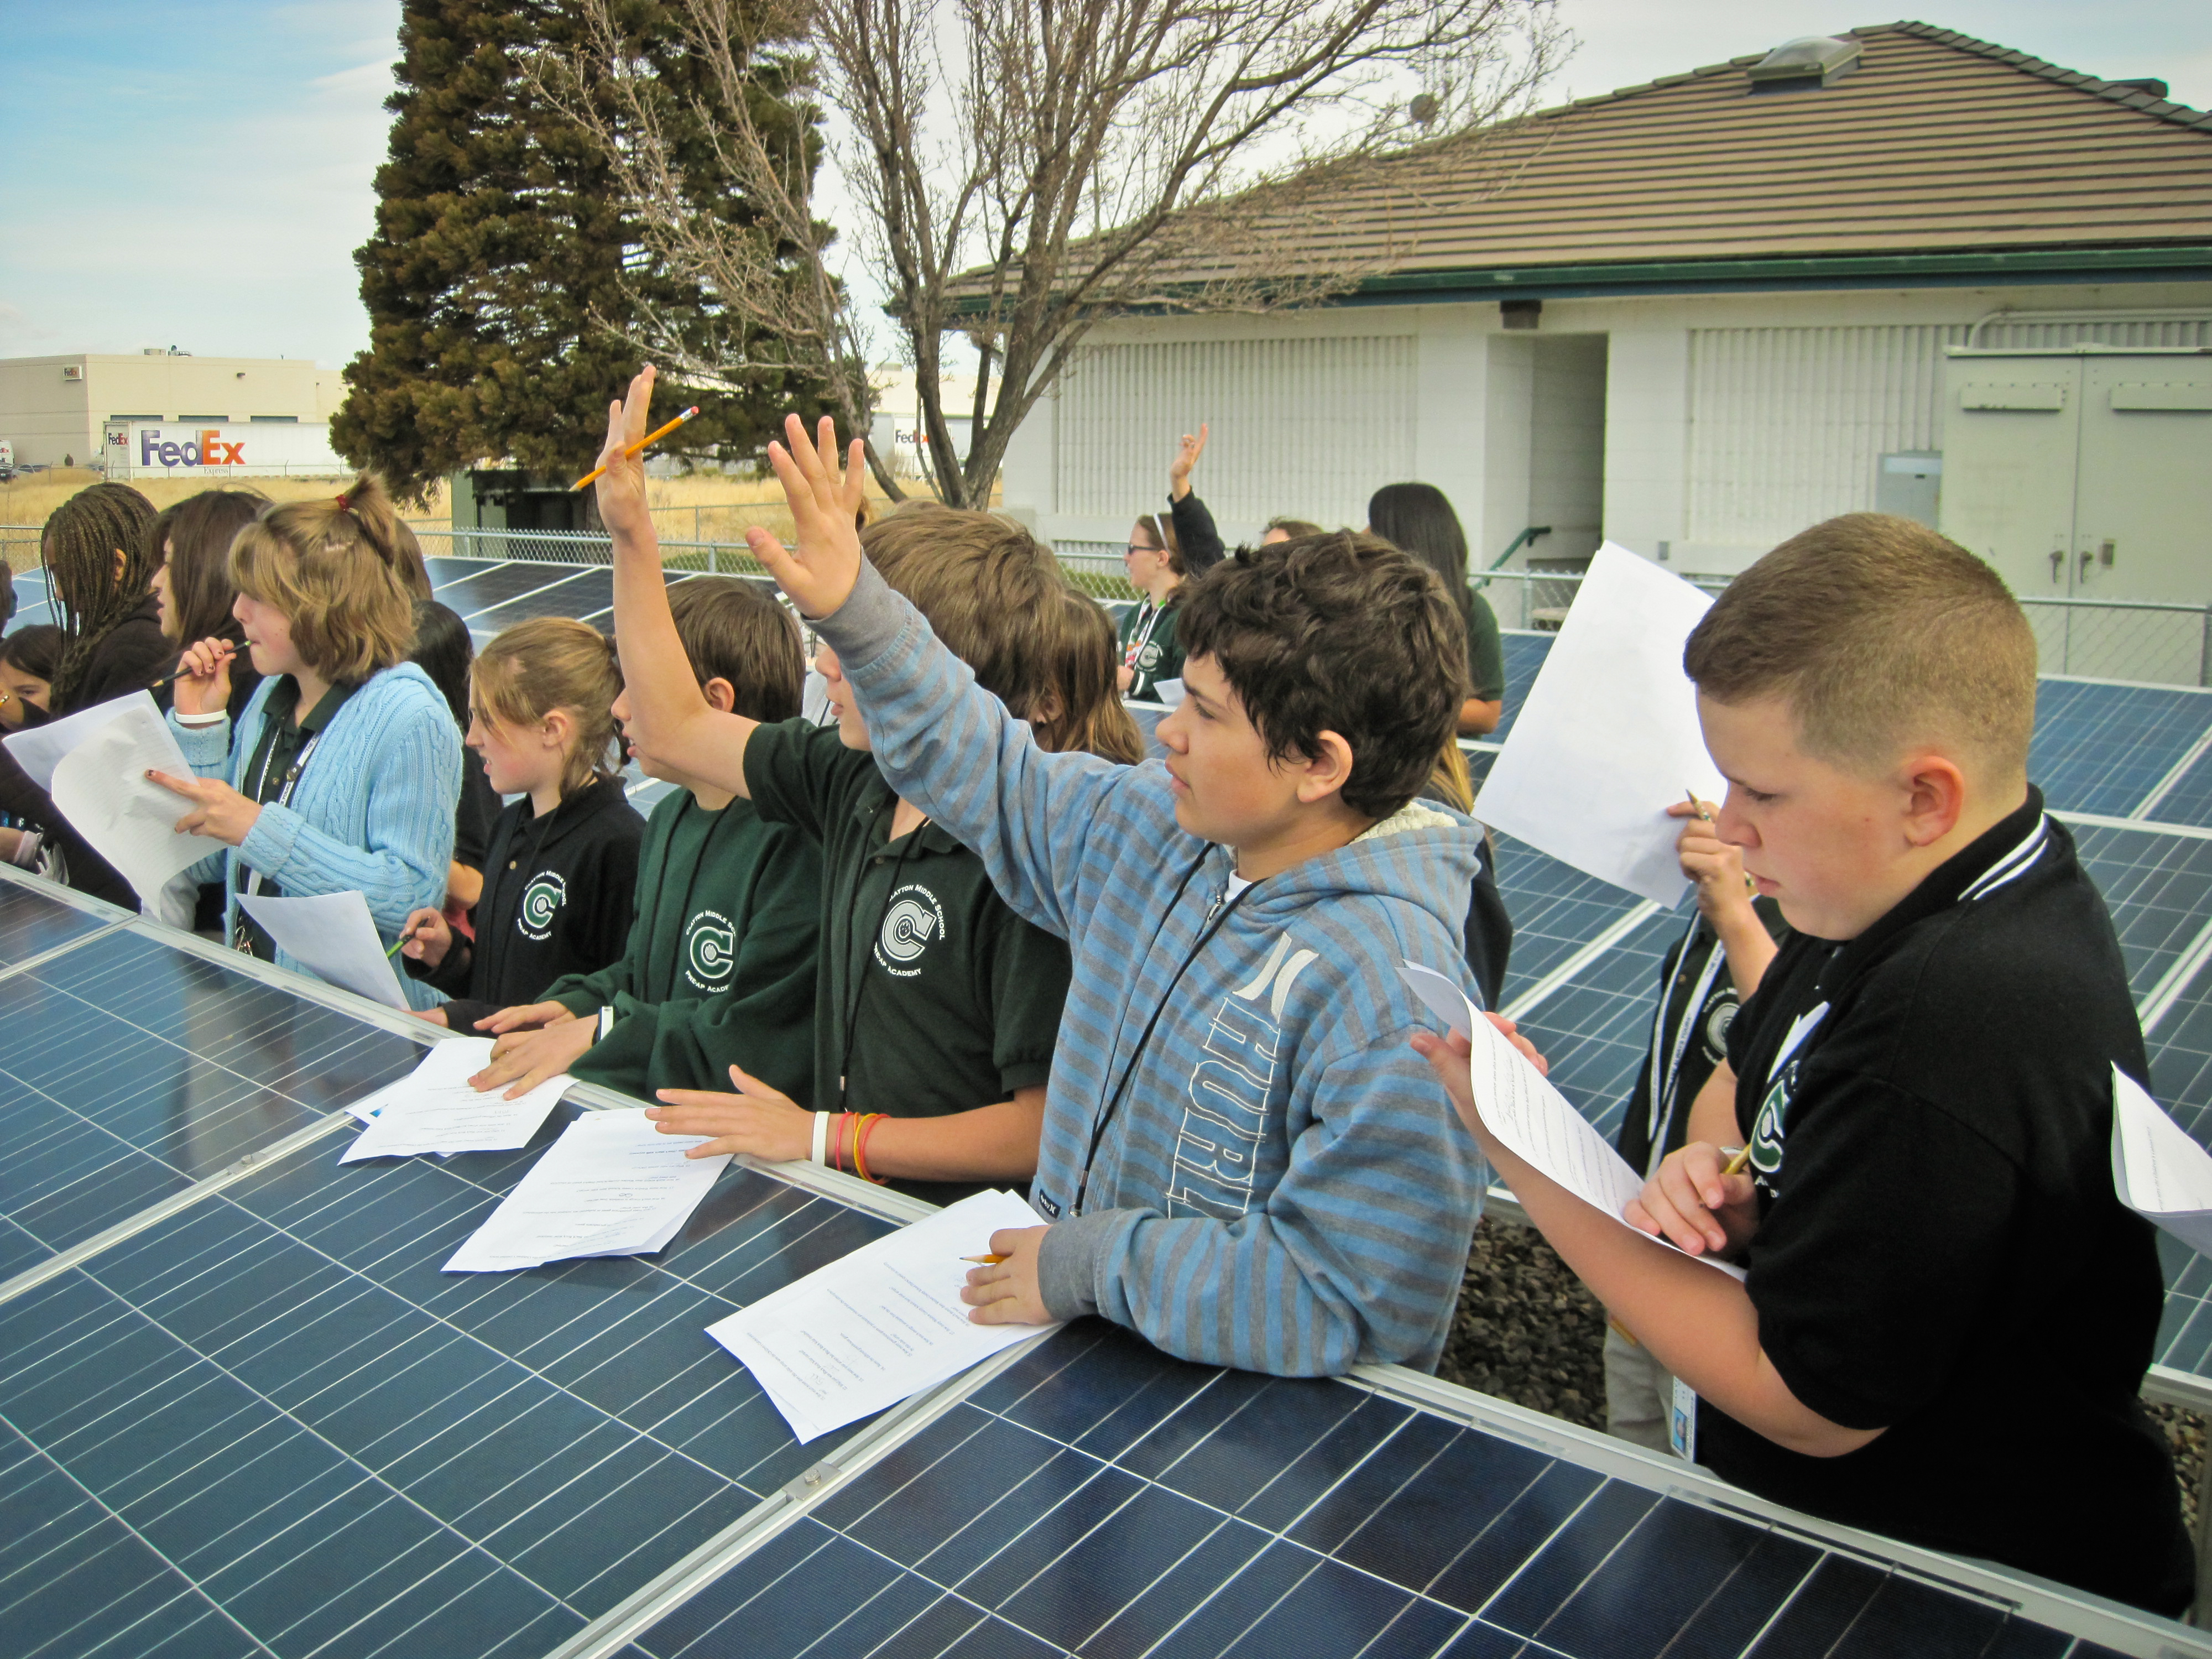 Children learn about solar panels Image